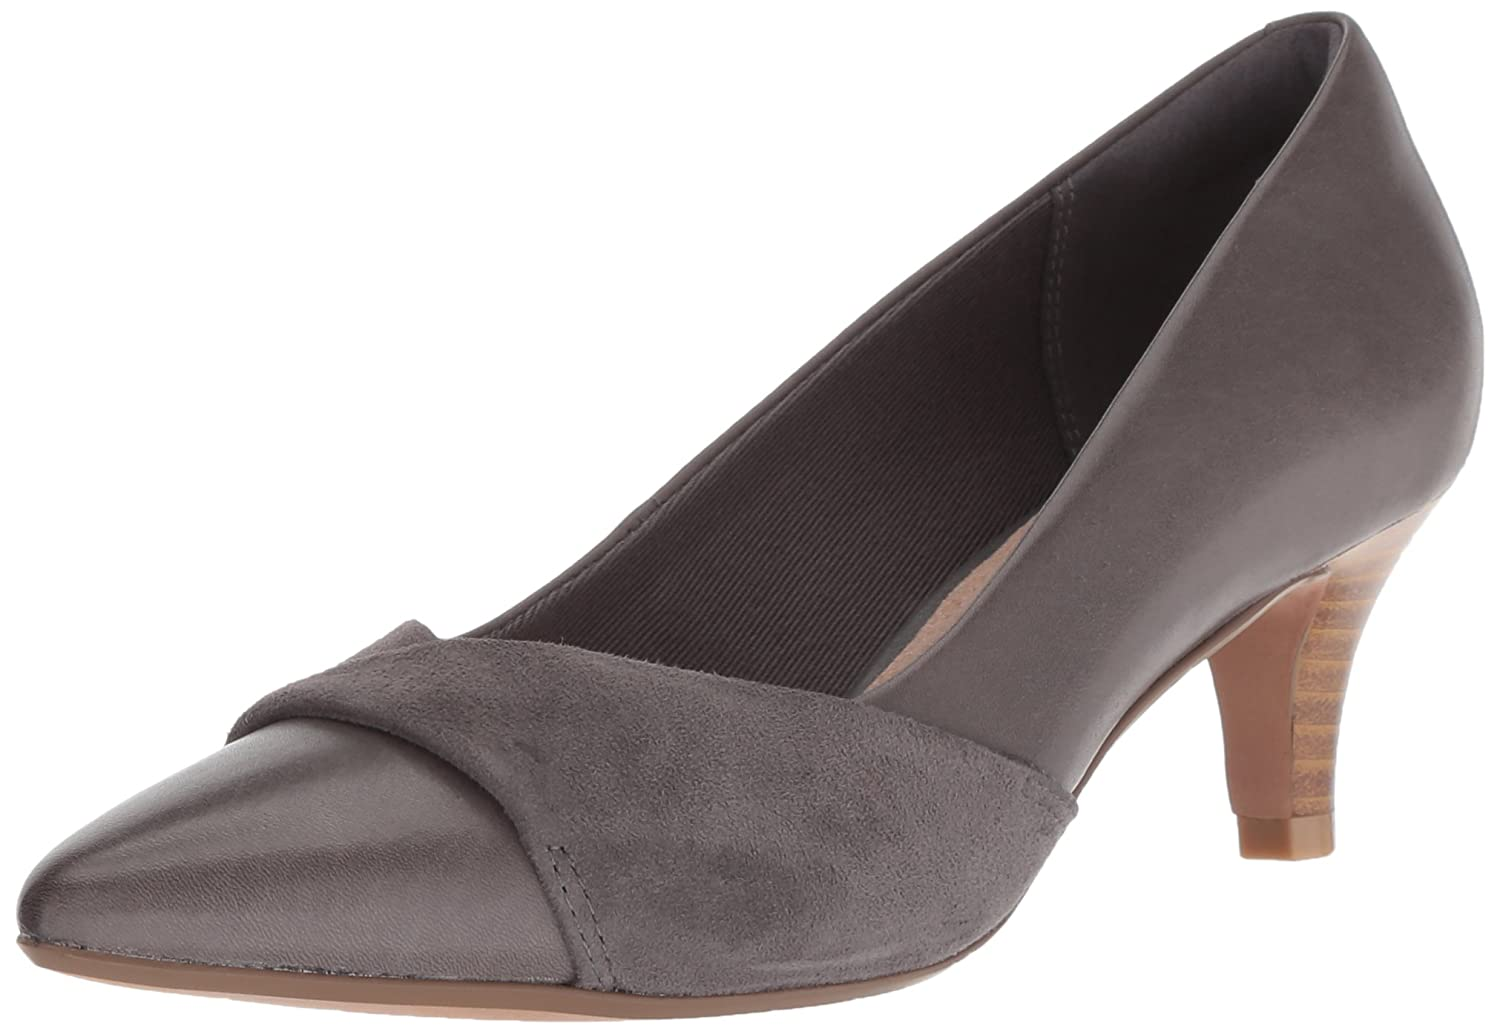 CLARKS Women's Linvale Vena Pump B077ZG2VJM 055 M US|Grey Leather/Nubuck Combi